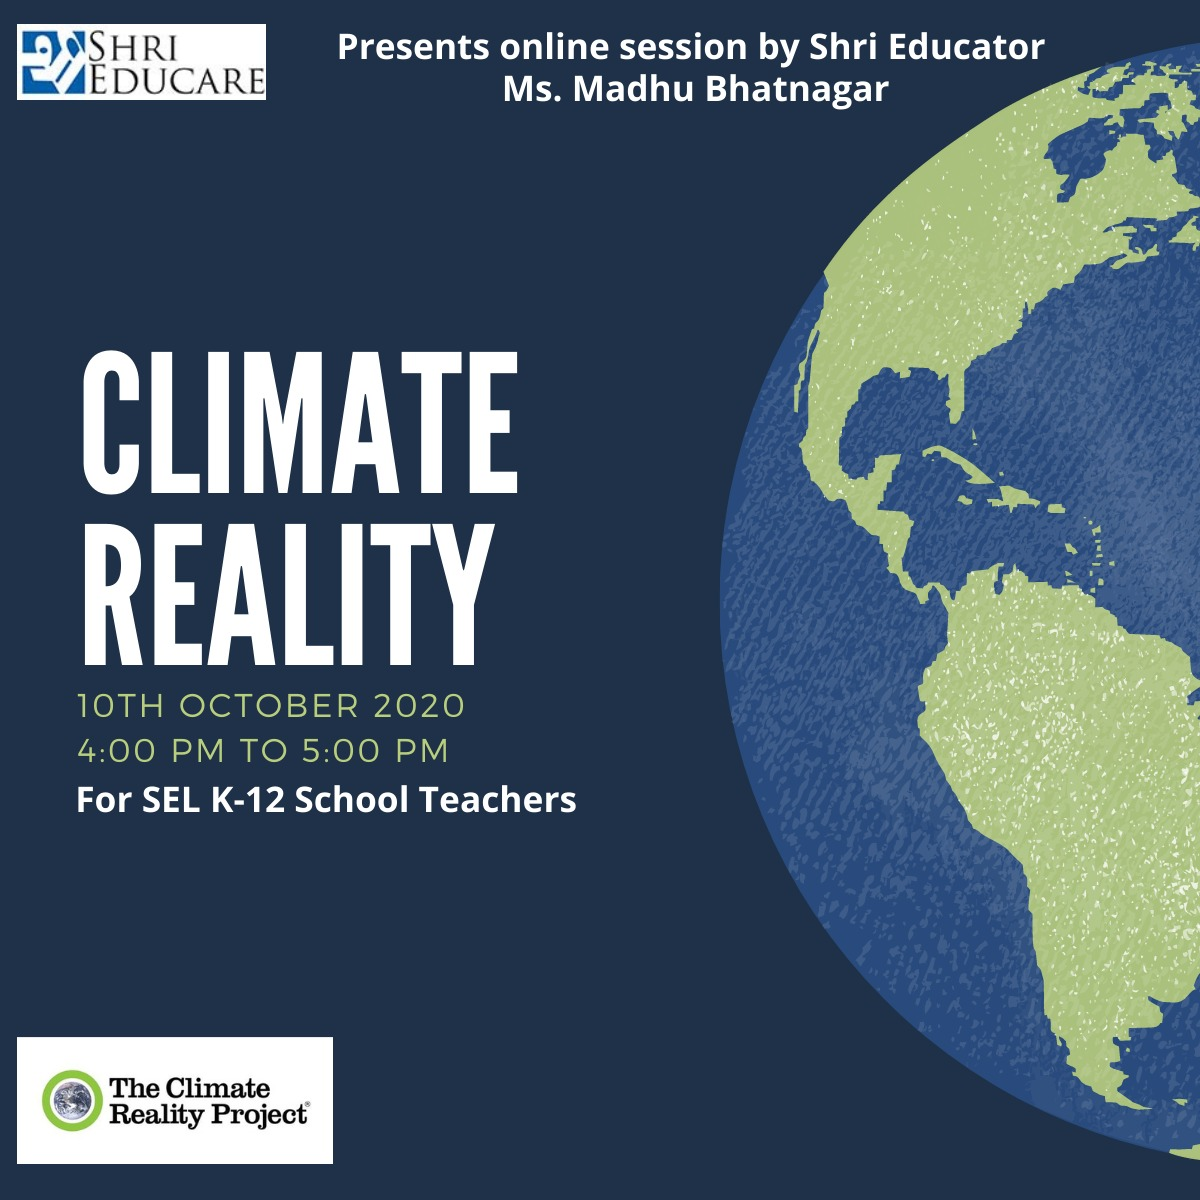 Online session on climate reality